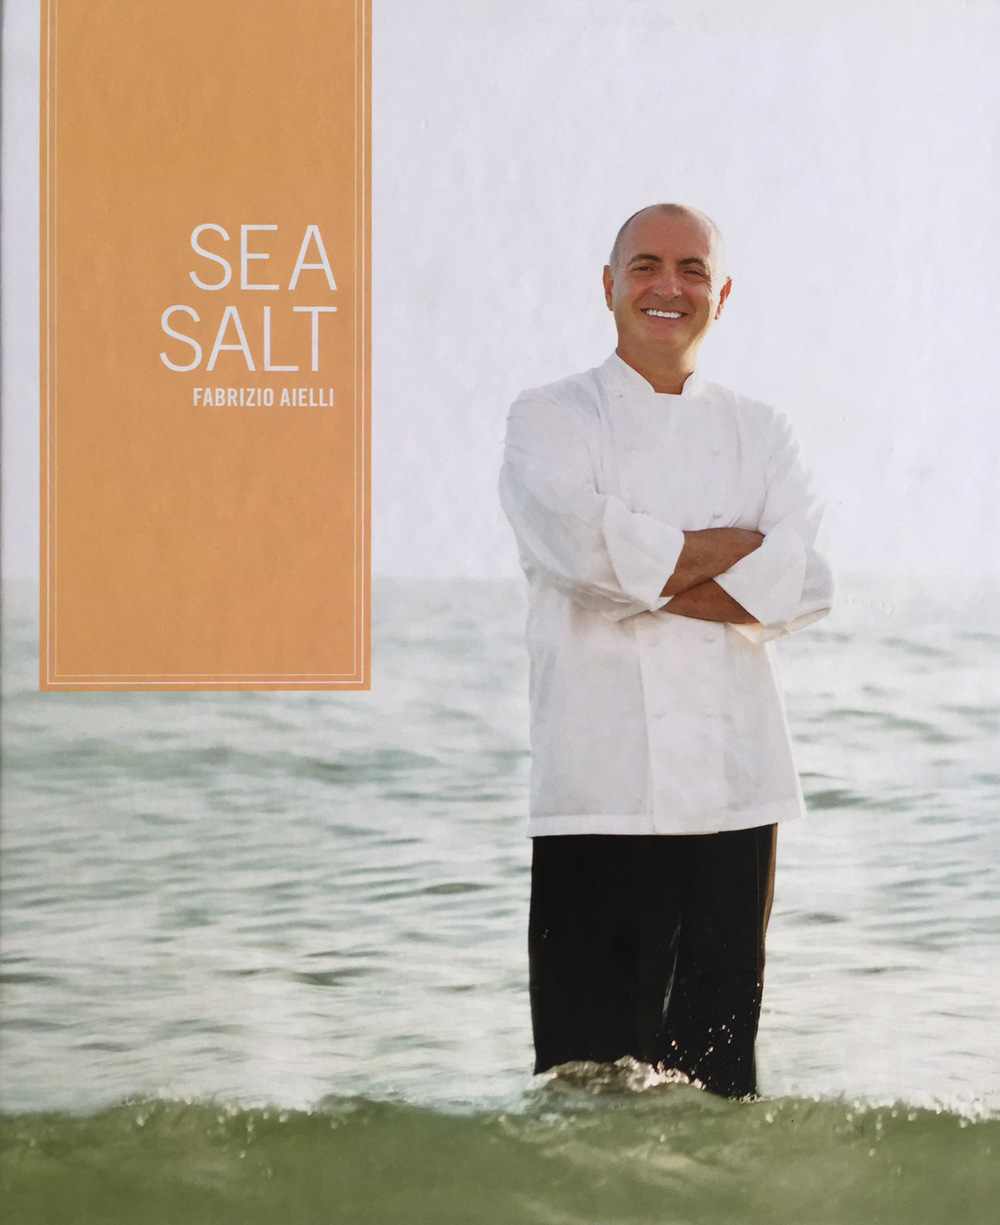 SEA_SALT_RECIPE_BOOK_CHEF_FABRIZIO_AIELLI_PHOTOGRAPHED_BY_vANESSA_ROGERS